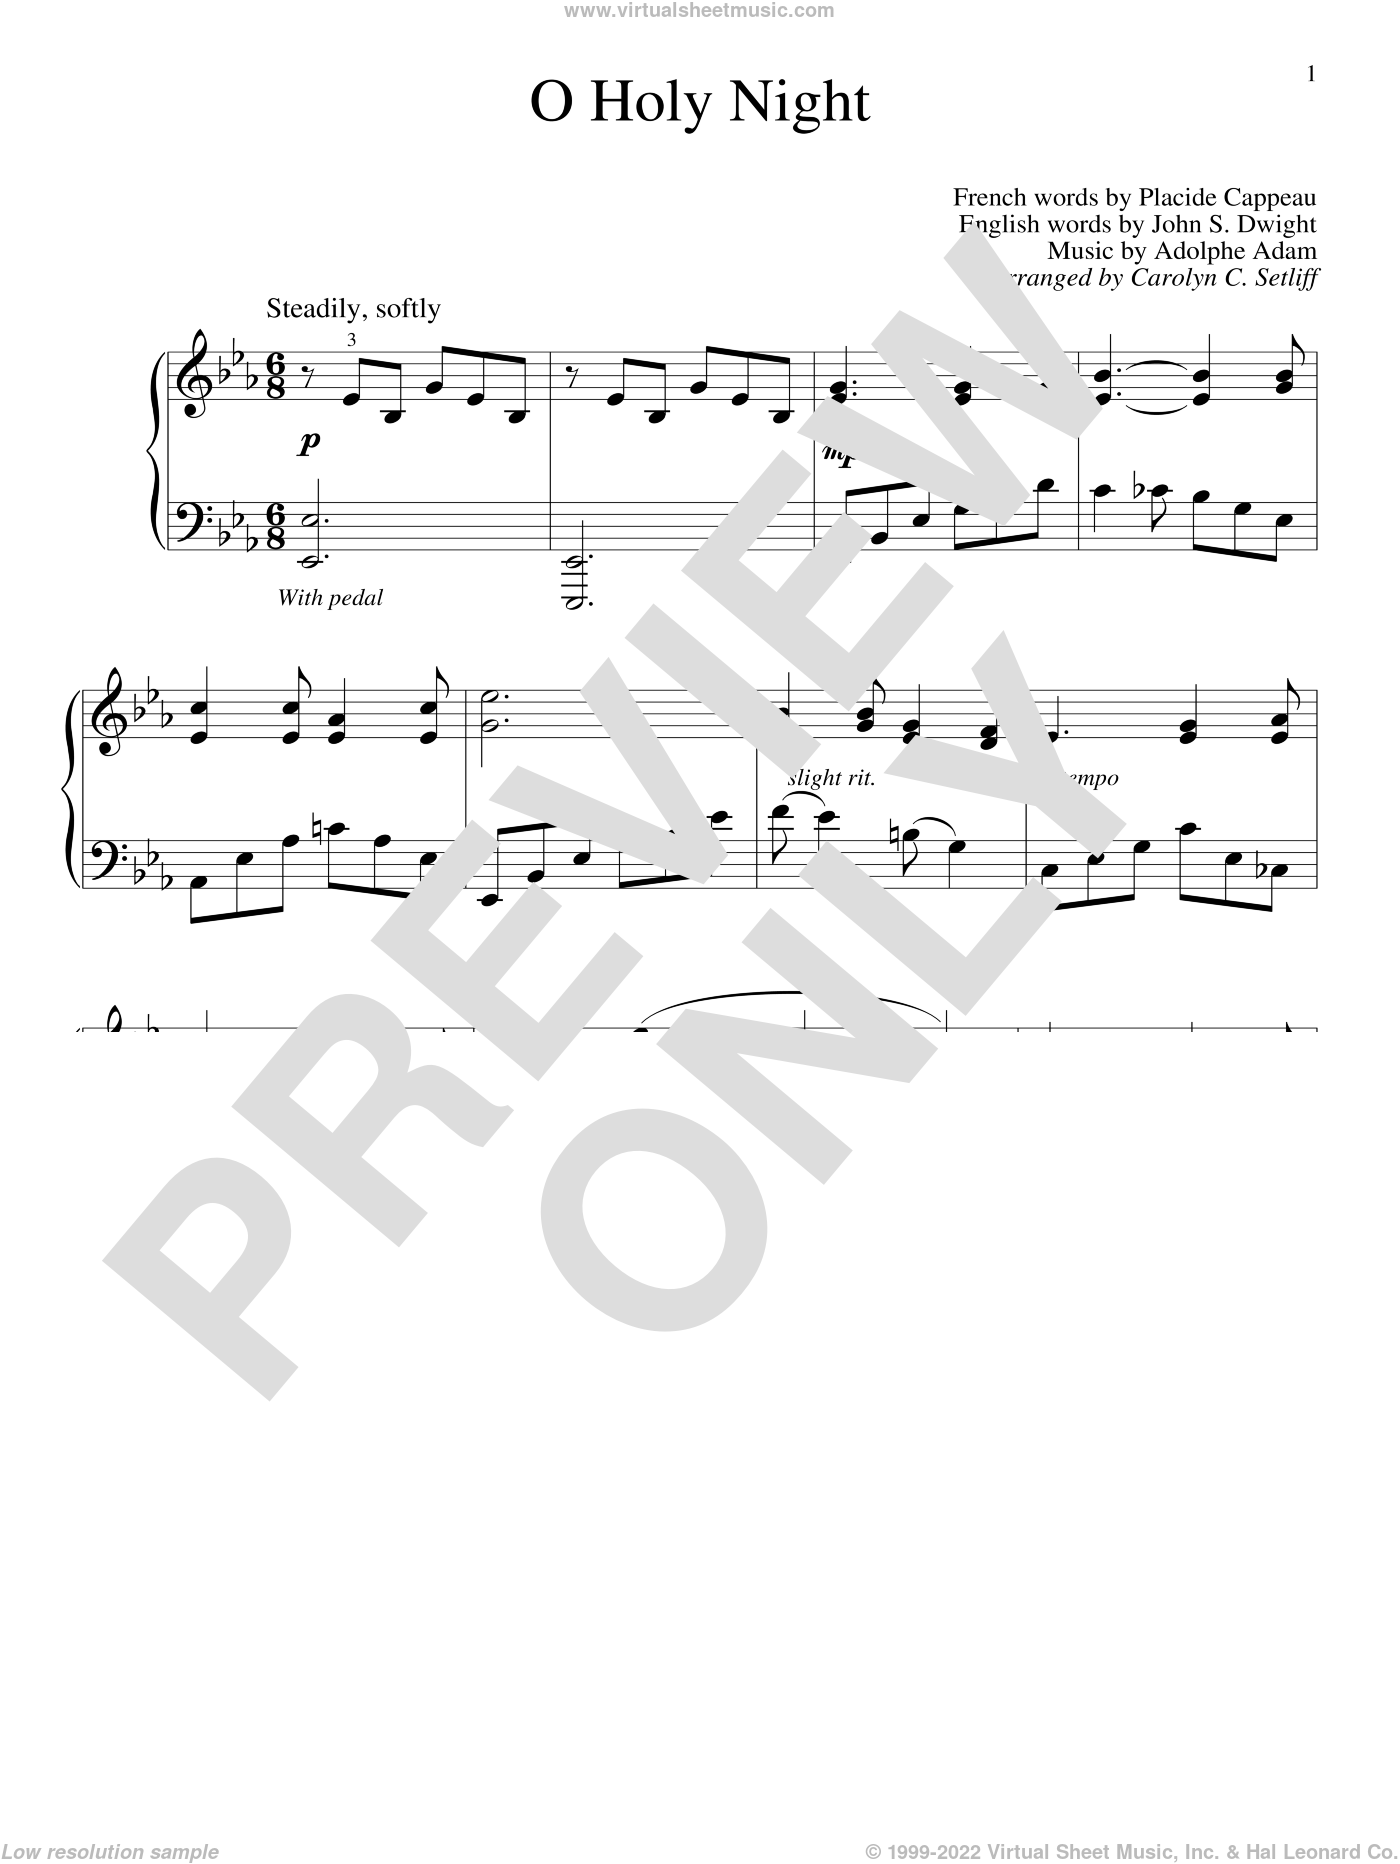 O Holy Night sheet music for piano solo (elementary) by Adolphe Adam, Carolyn C. Setliff and John S. Dwight, Christmas carol score, beginner piano (elementary). Score Image Preview.